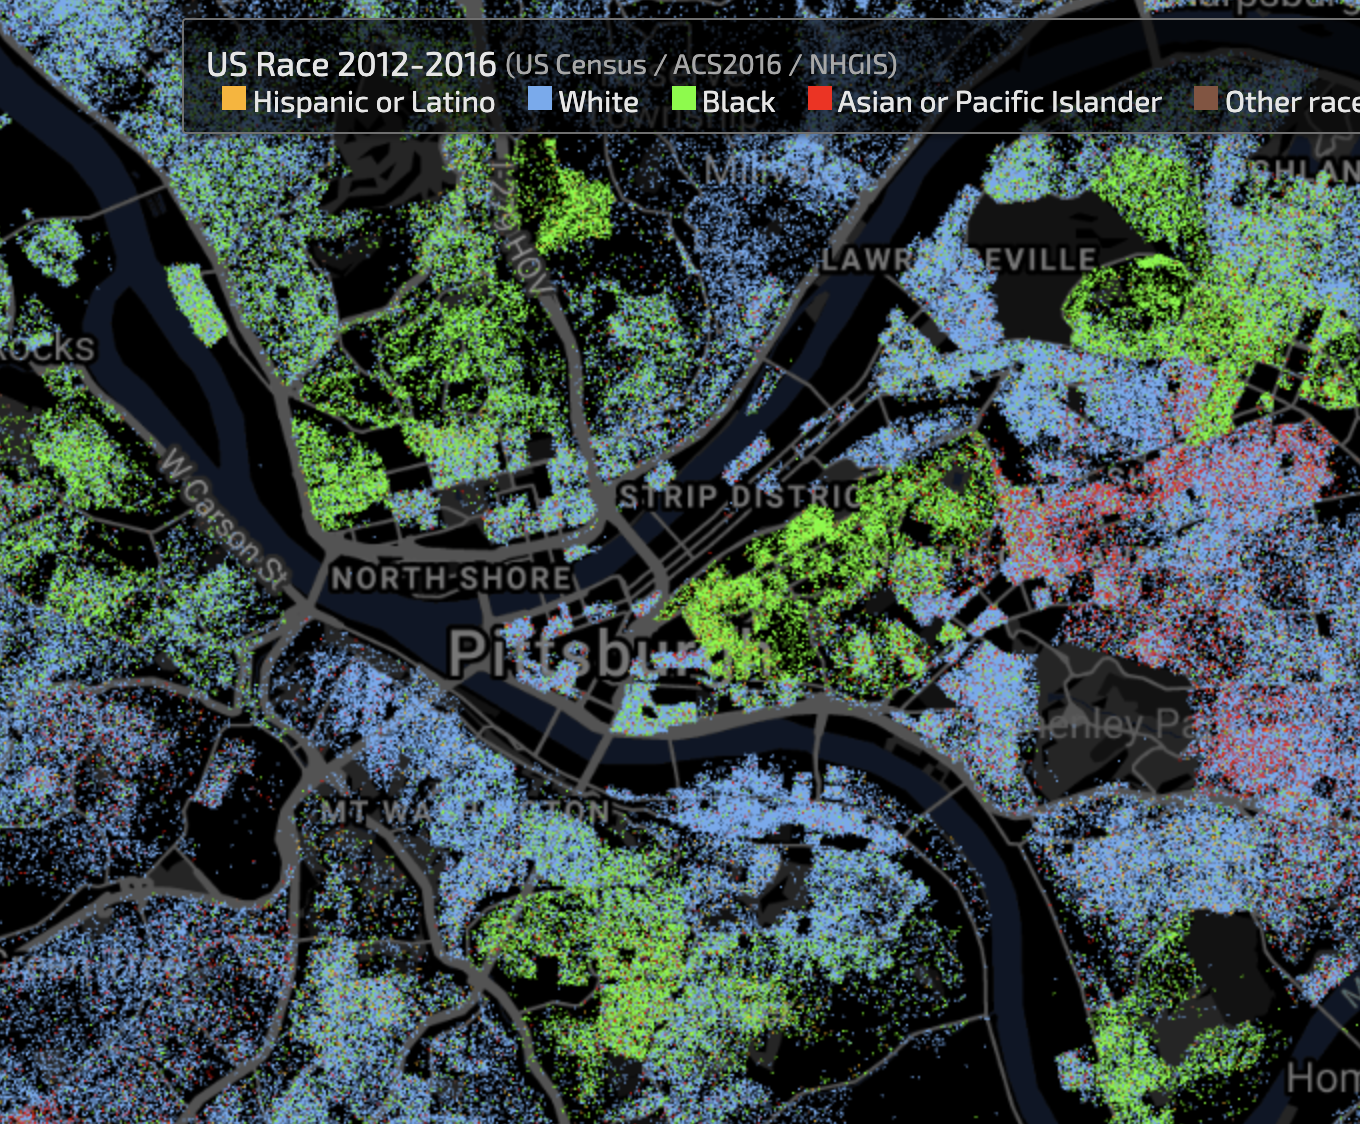 A map showing the racial density of different neighborhoods of Pittsburgh. (credit: Courtesy of EarthTime)